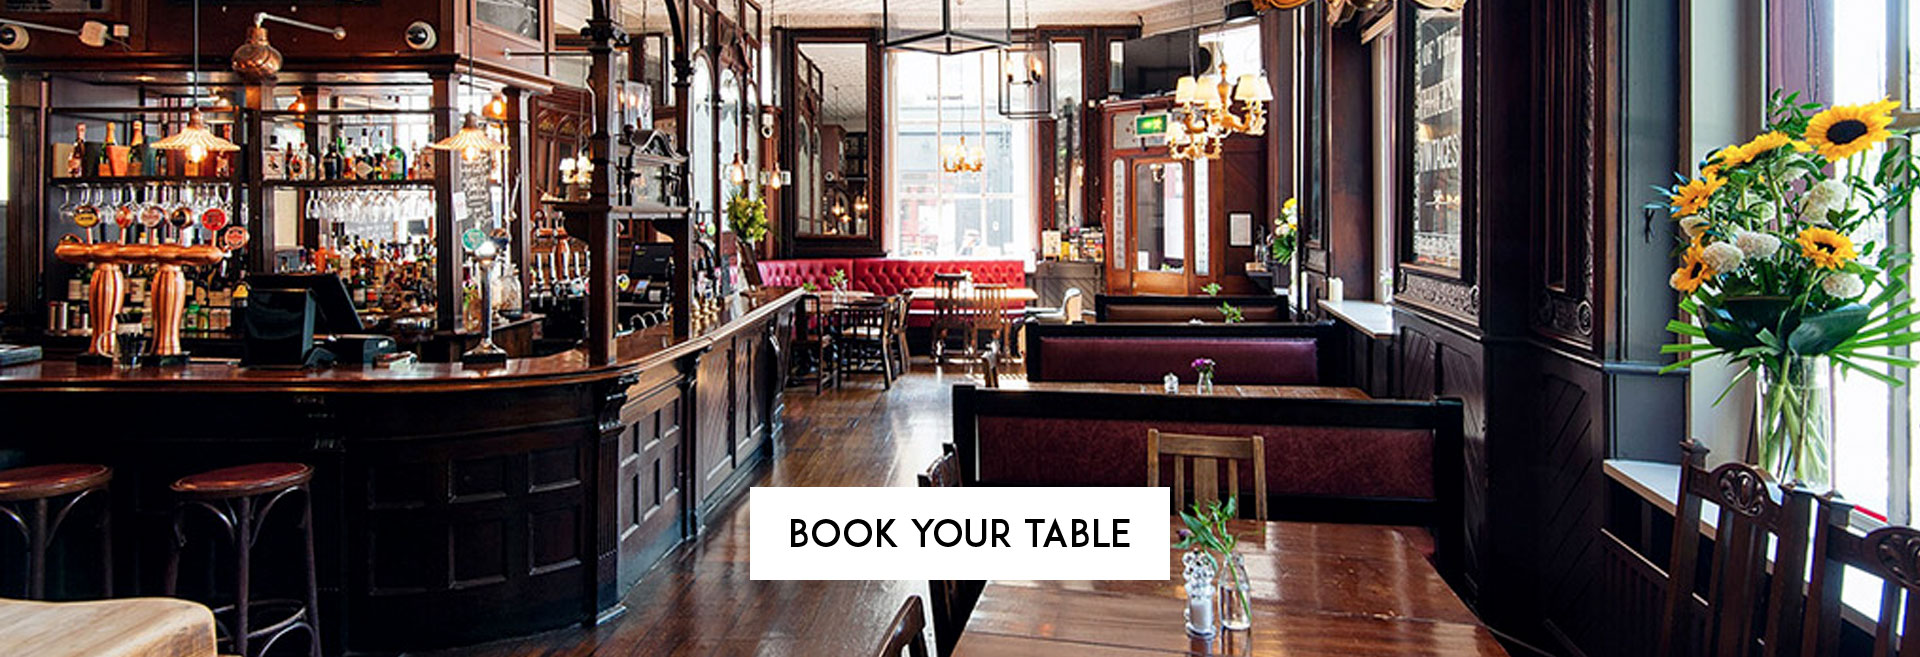 Book Your Table at The Washington